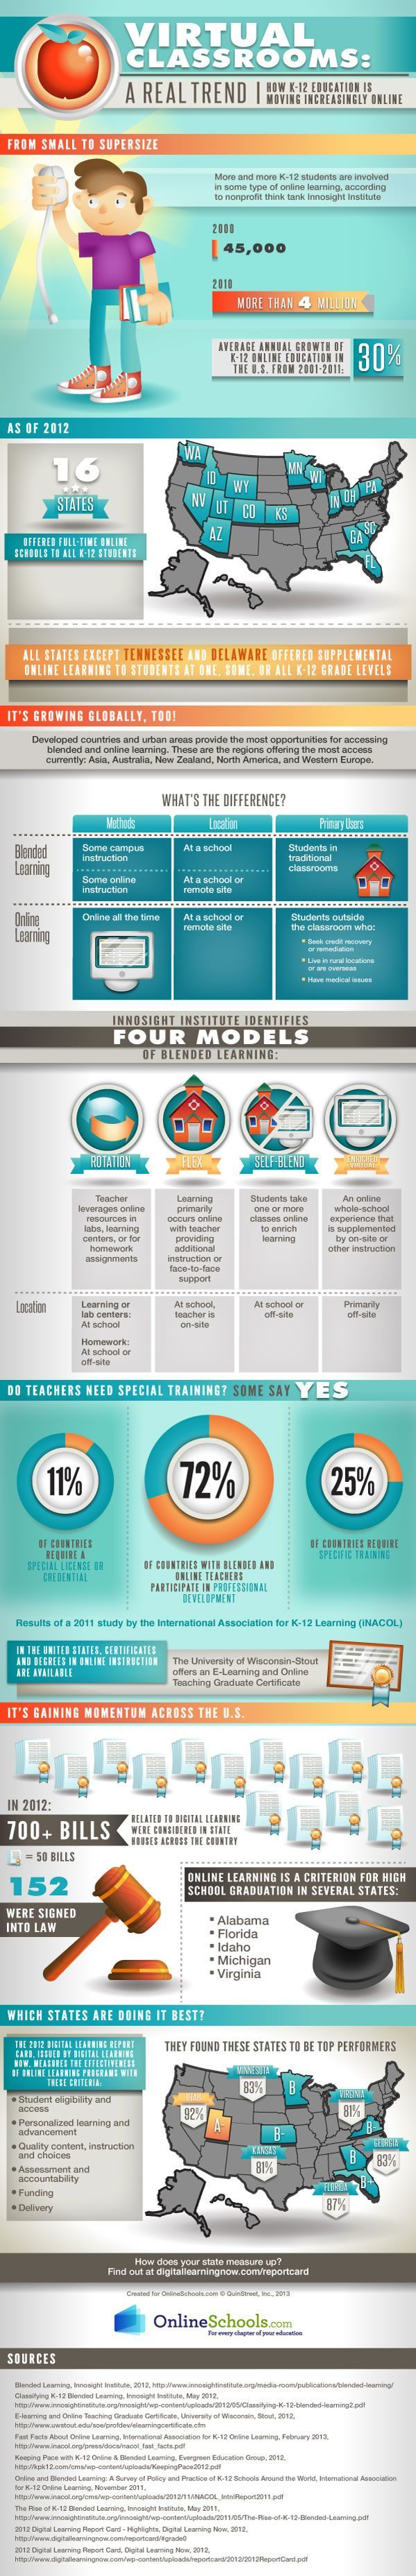 Online-and-Blended-Learning-K12-Infographic